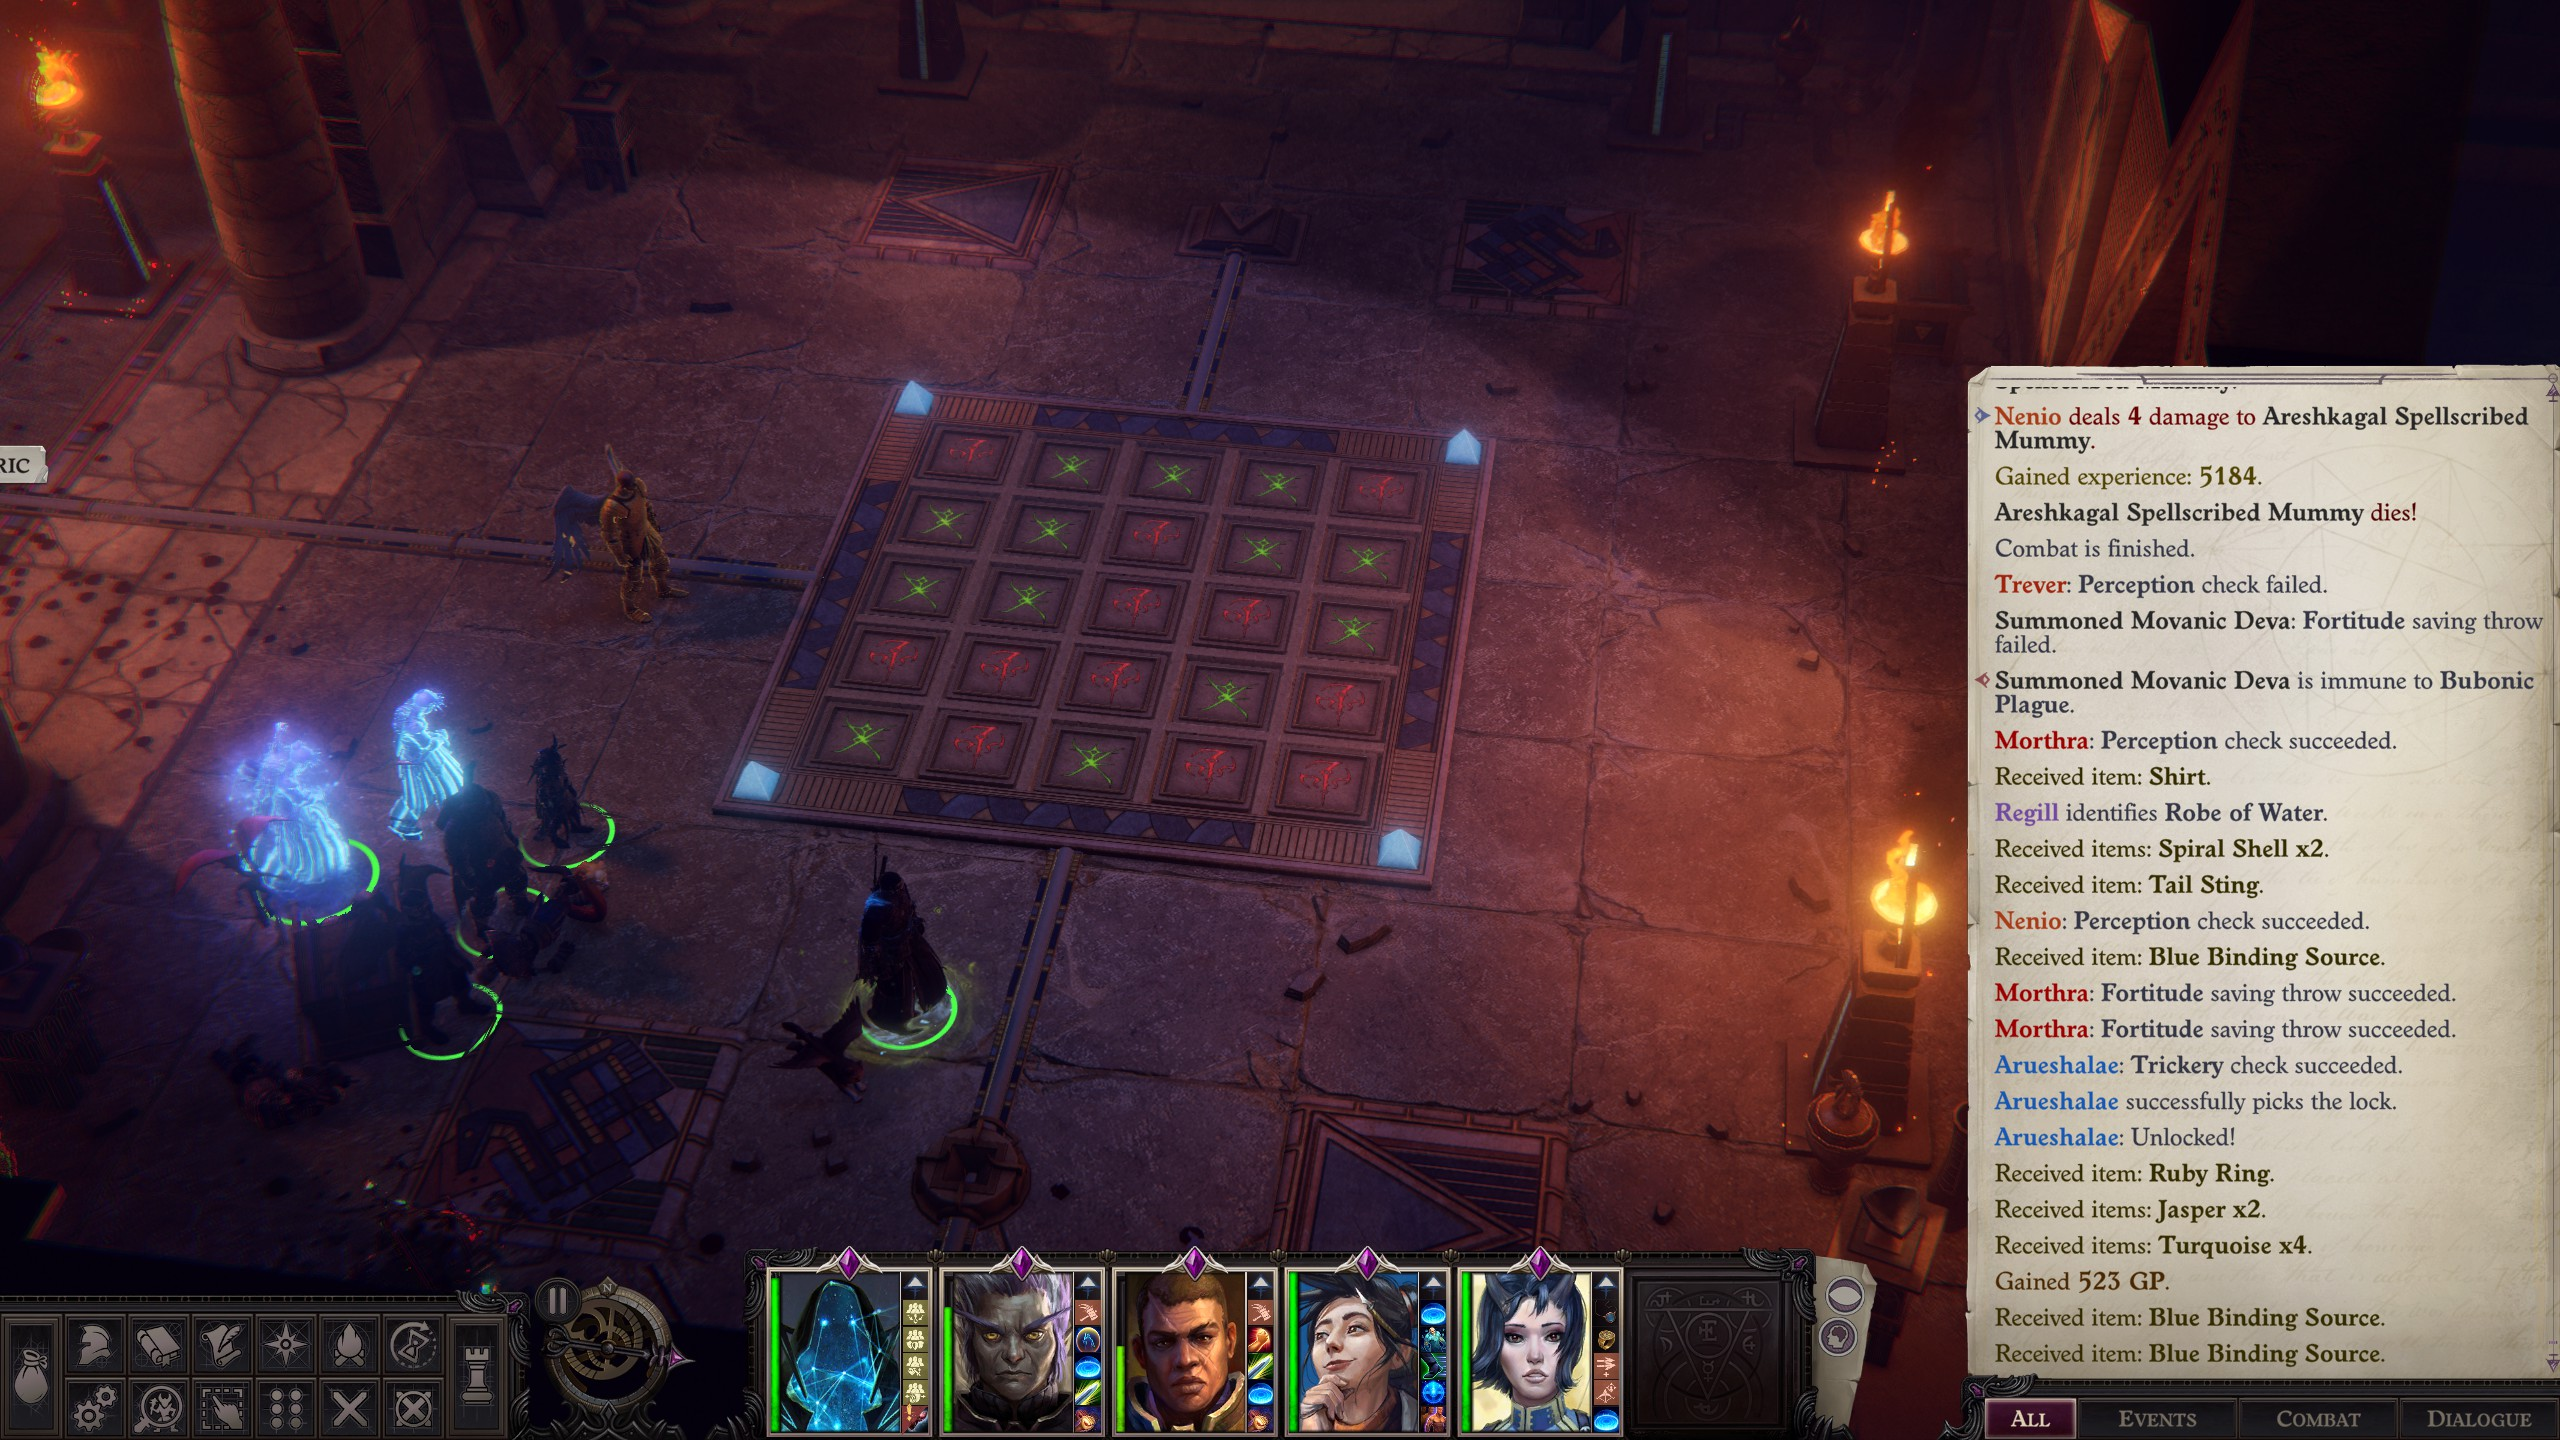 Pathfinder: Wrath of the Righteous - Puzzle Solution Tips for Enigma - Playthrough - Puzzle 1: Tic Tac Toe - 9196C52